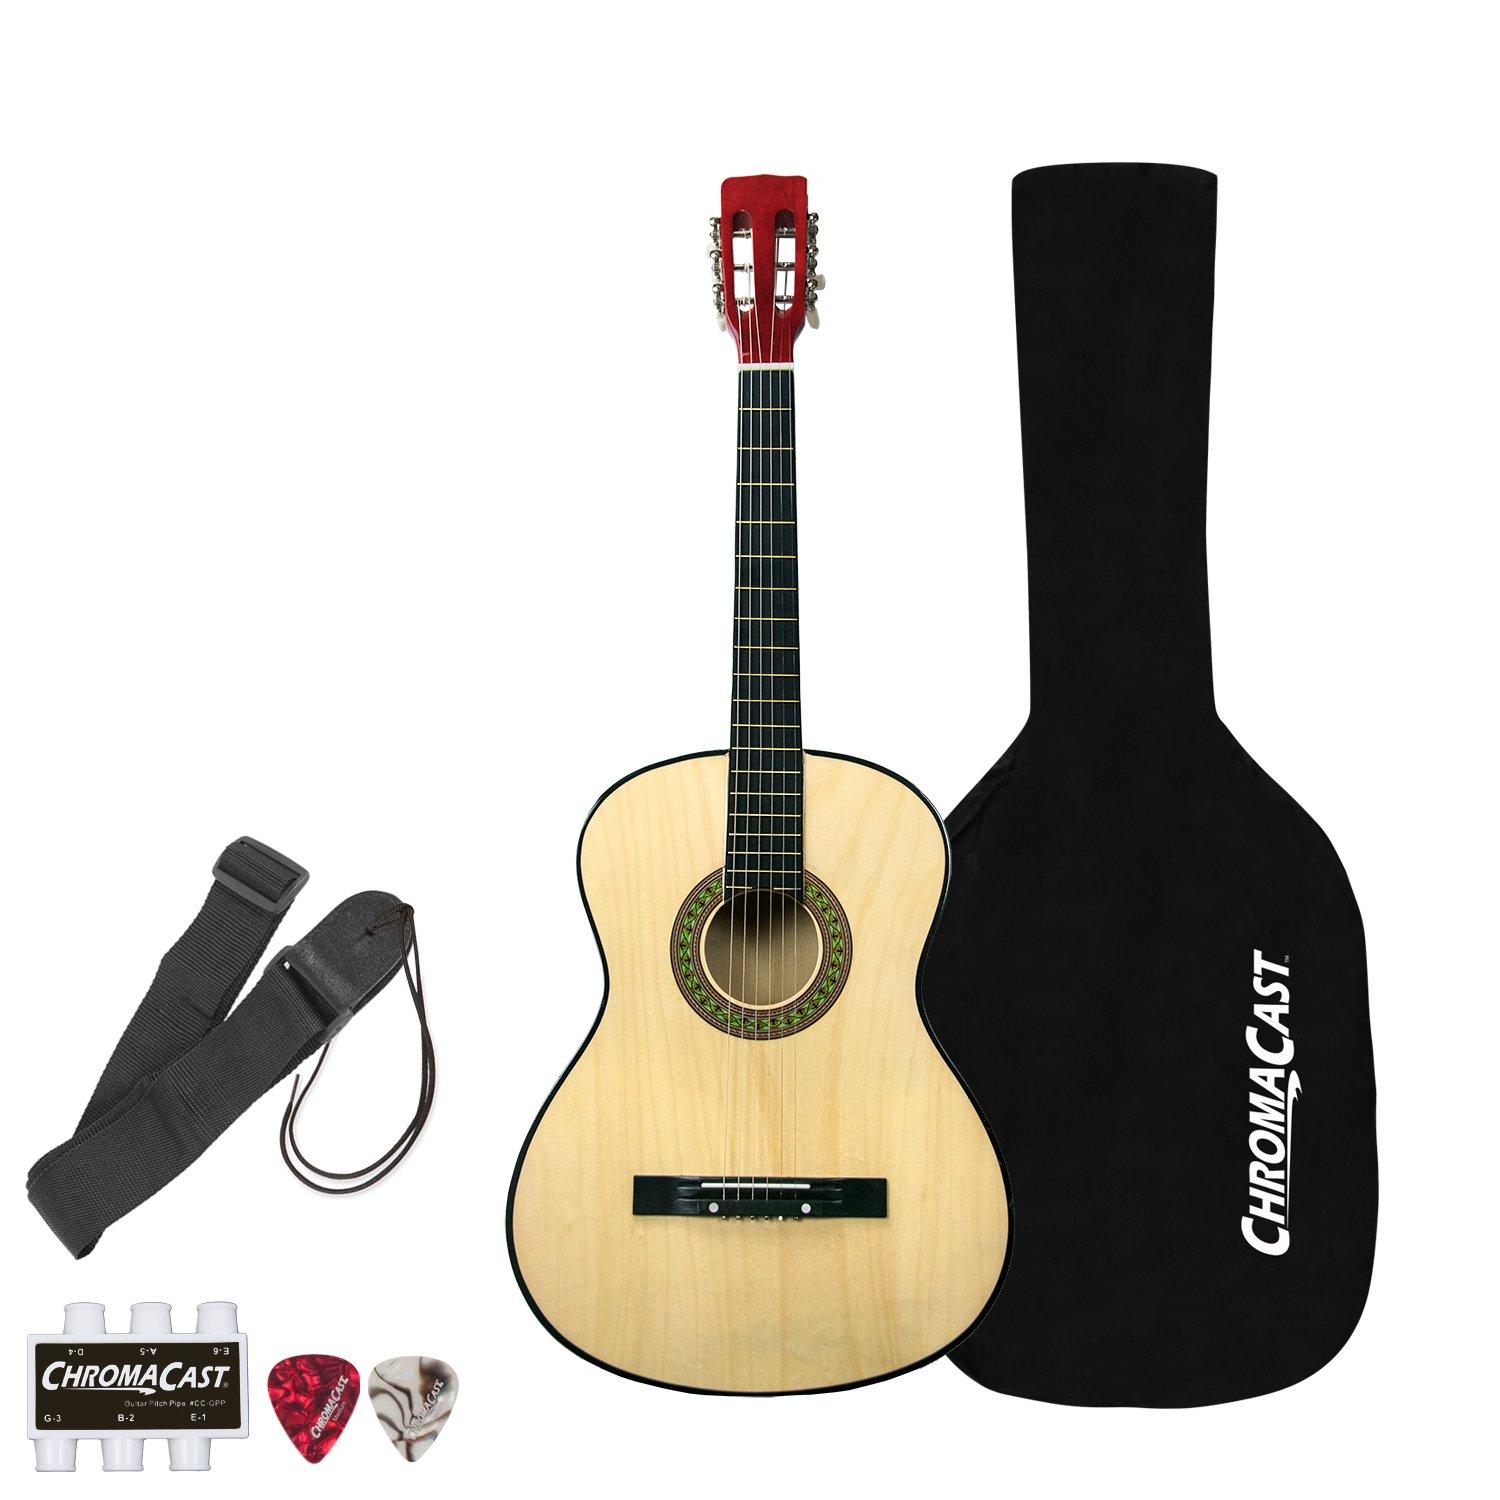 Rise by Sawtooth Full Size Steel String Beginner's Acoustic Guitar Pack, Natural ST-RISE-AG-N-KIT-1